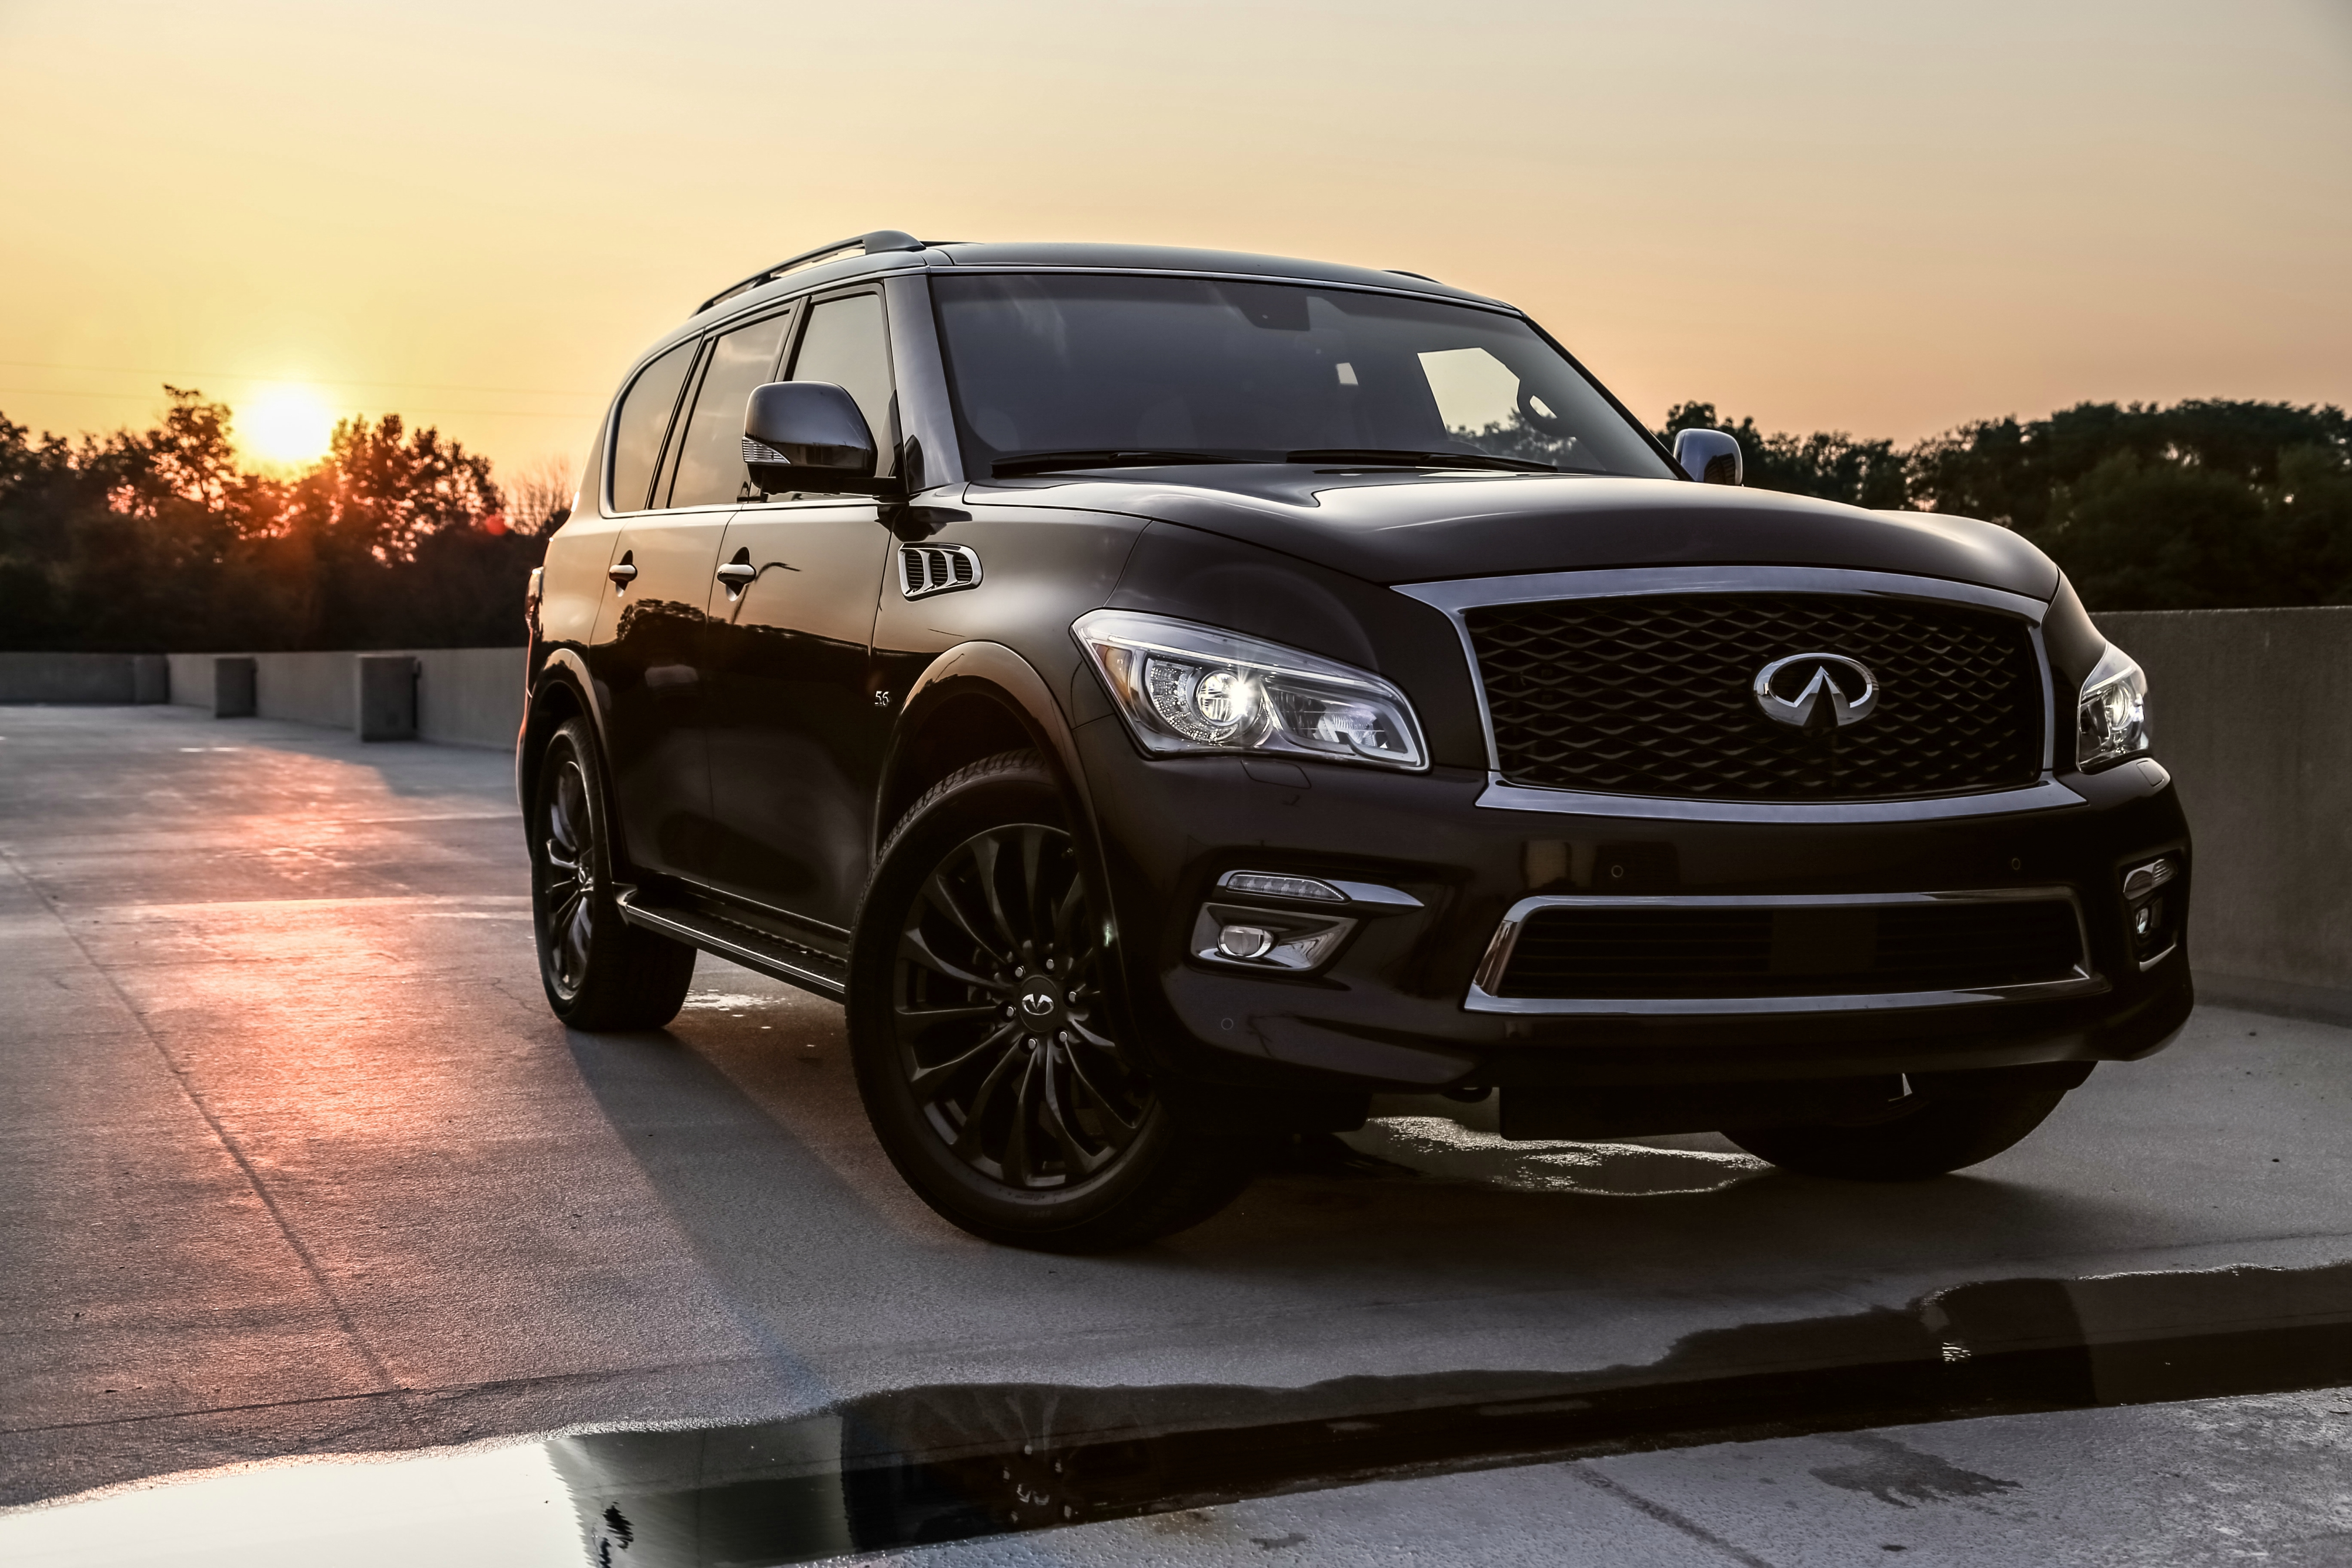 2015 infiniti qx80 limited living large life is poppin 39. Black Bedroom Furniture Sets. Home Design Ideas